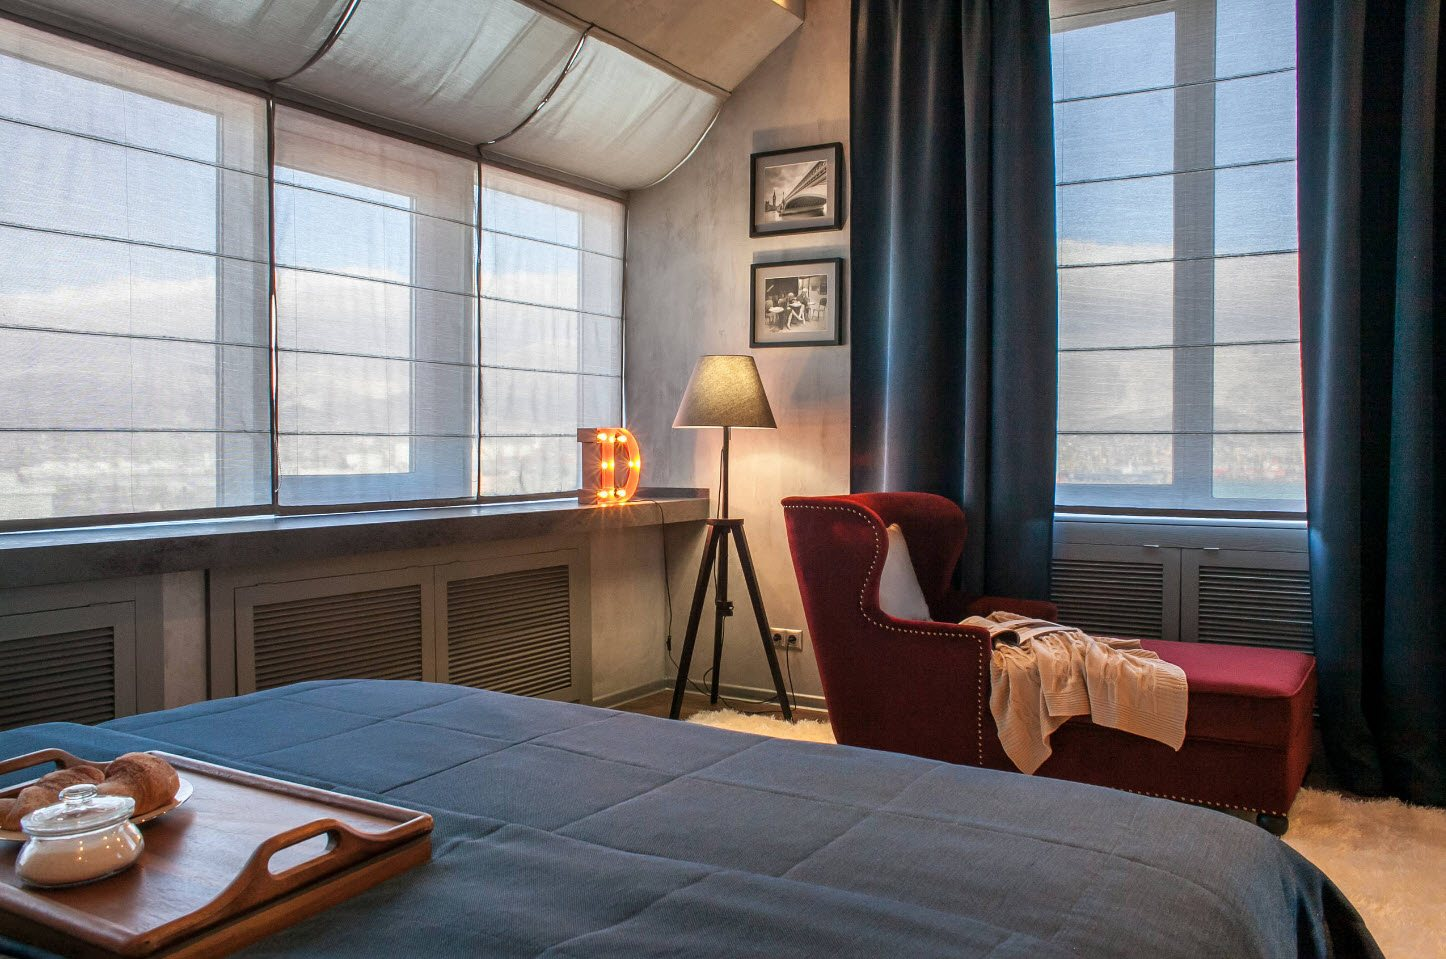 Unusual bedroom curtains in the form of sail